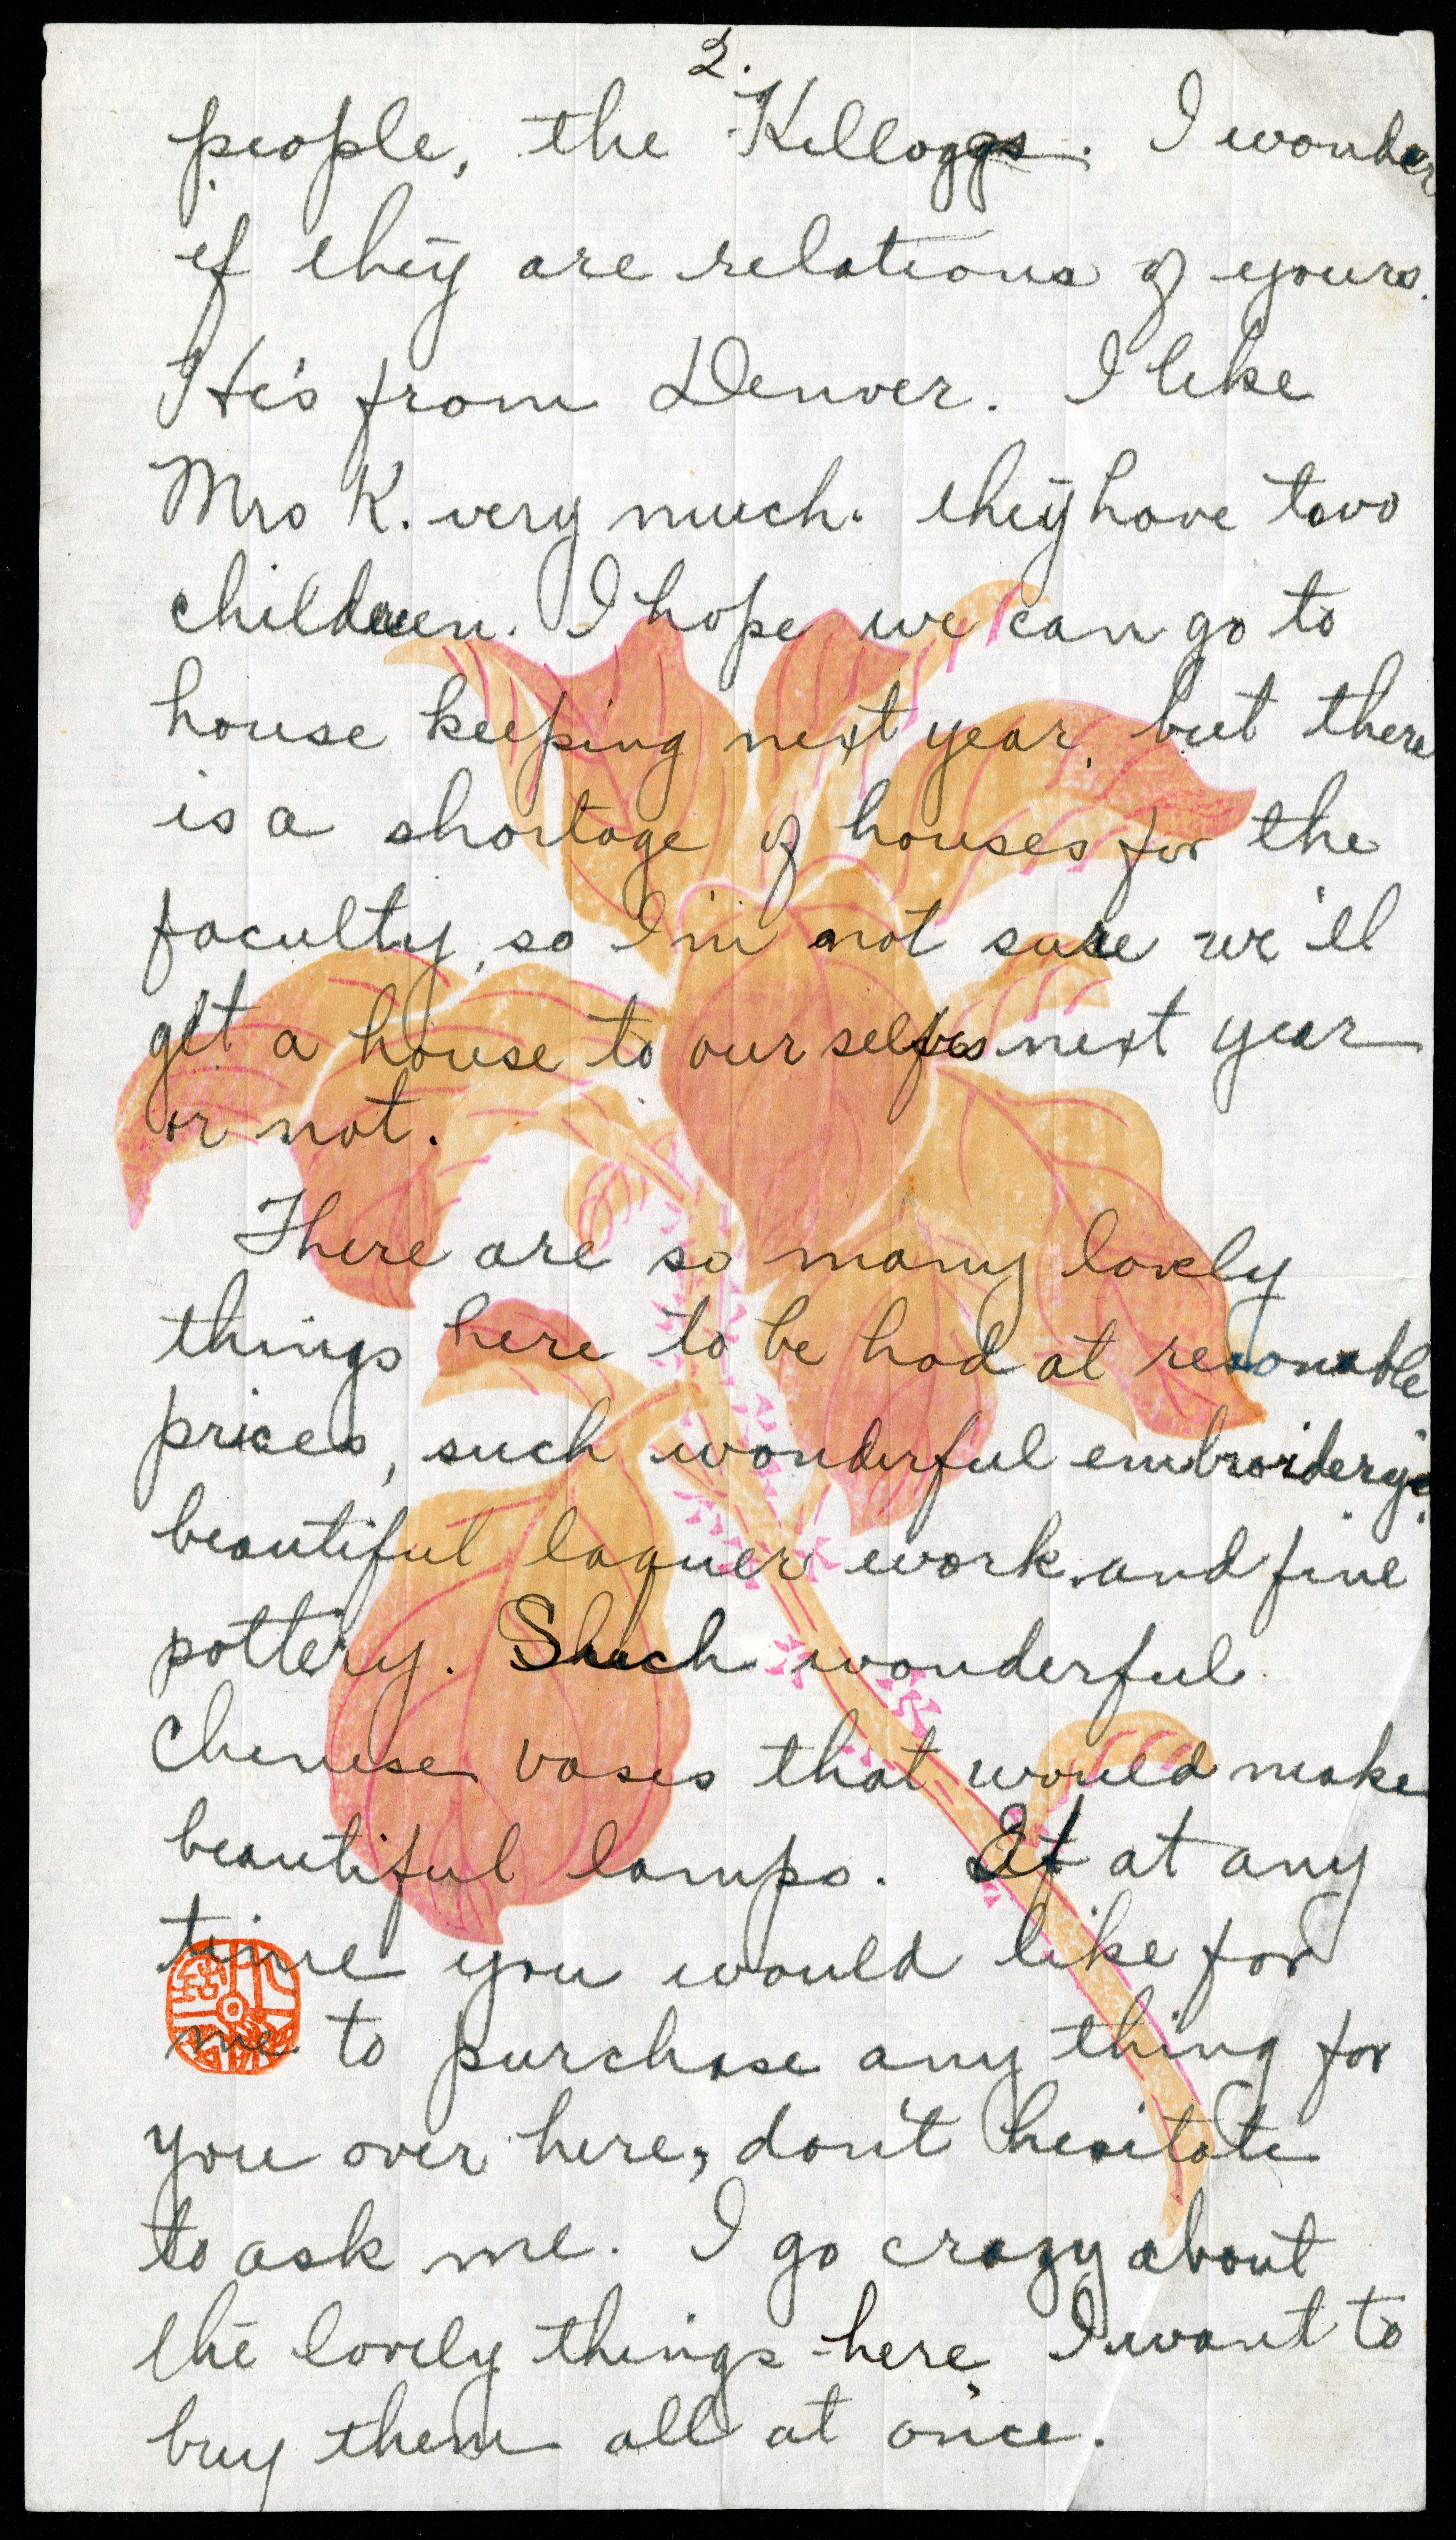 Letter from Mabel Truss Metcalf to Marguerite Henrich Kellogg, October 14, 1923, page 2.